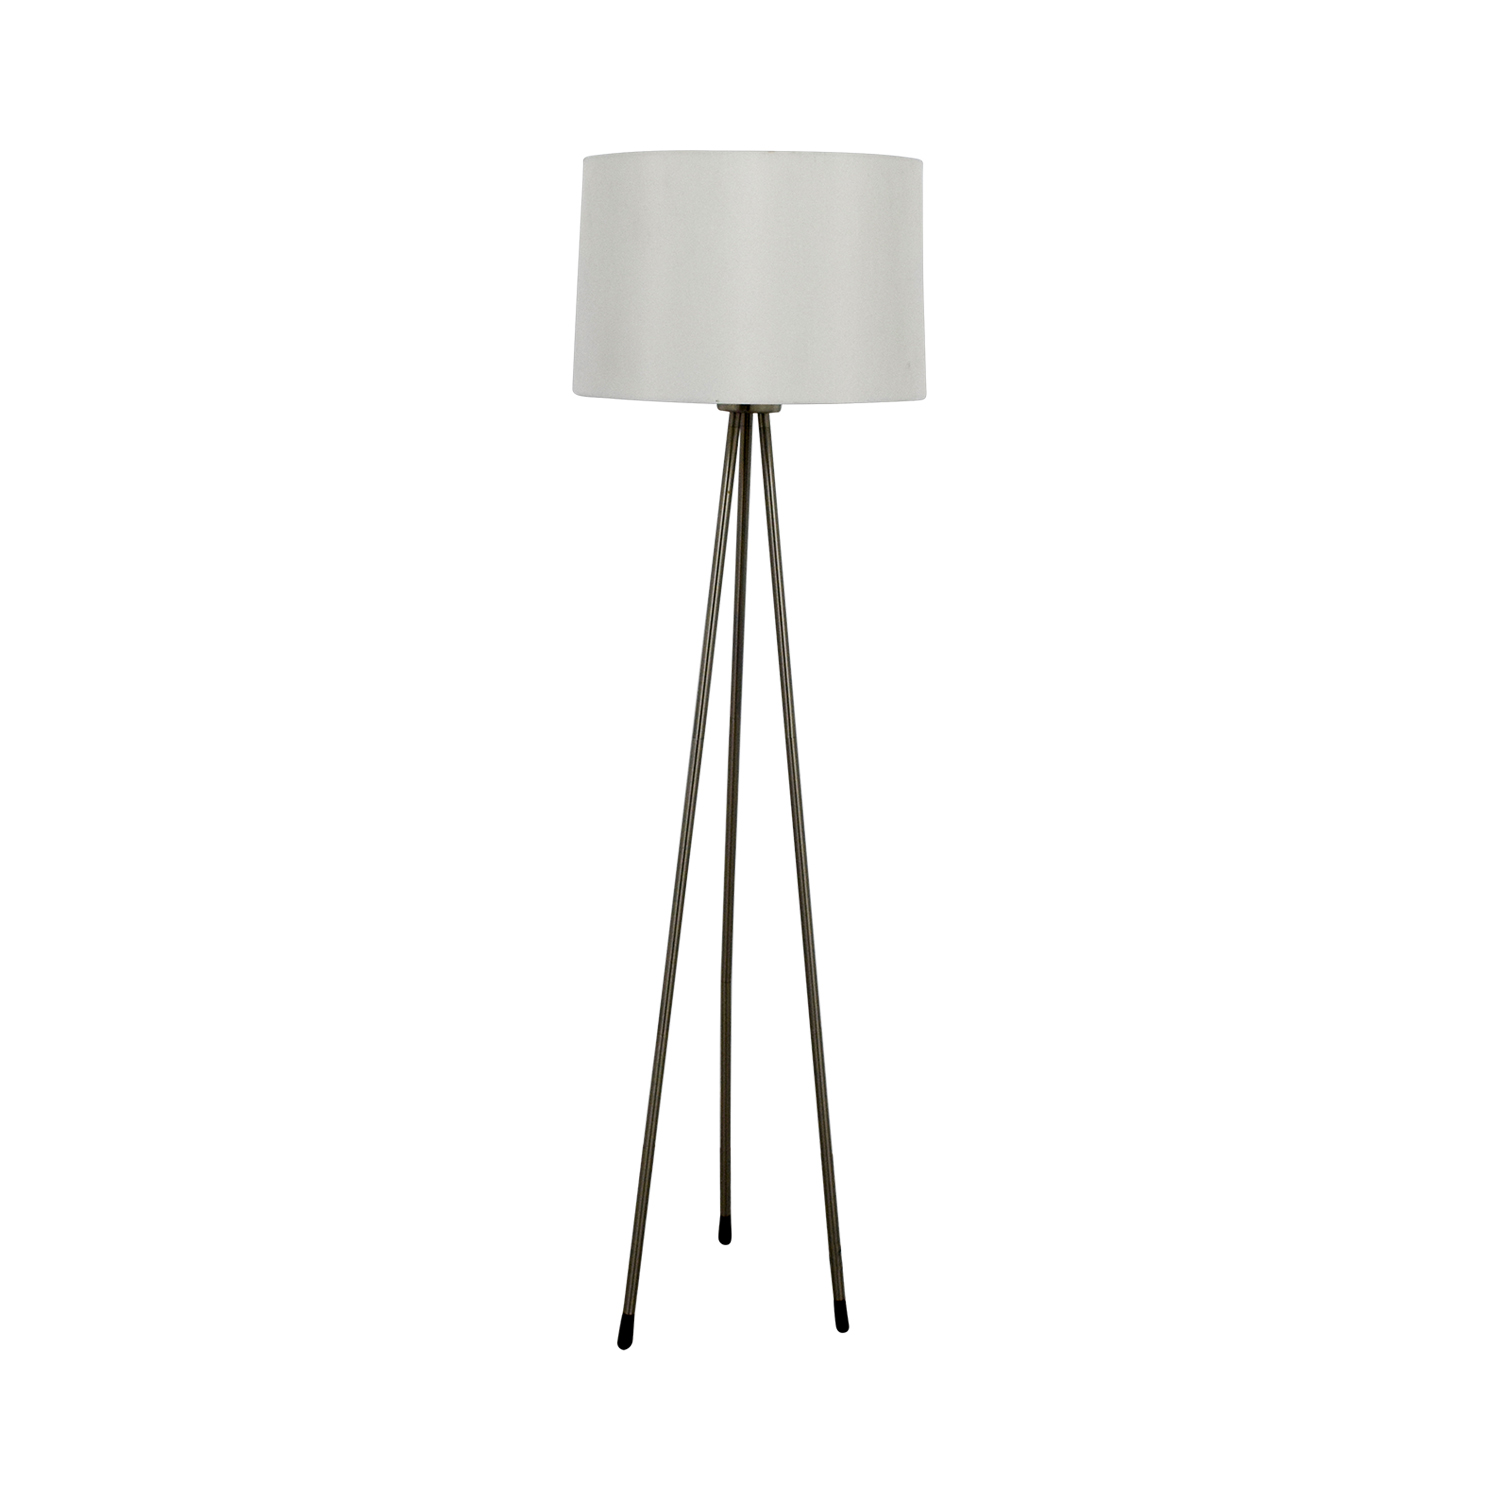 buy Metal Floor Lamp Decor